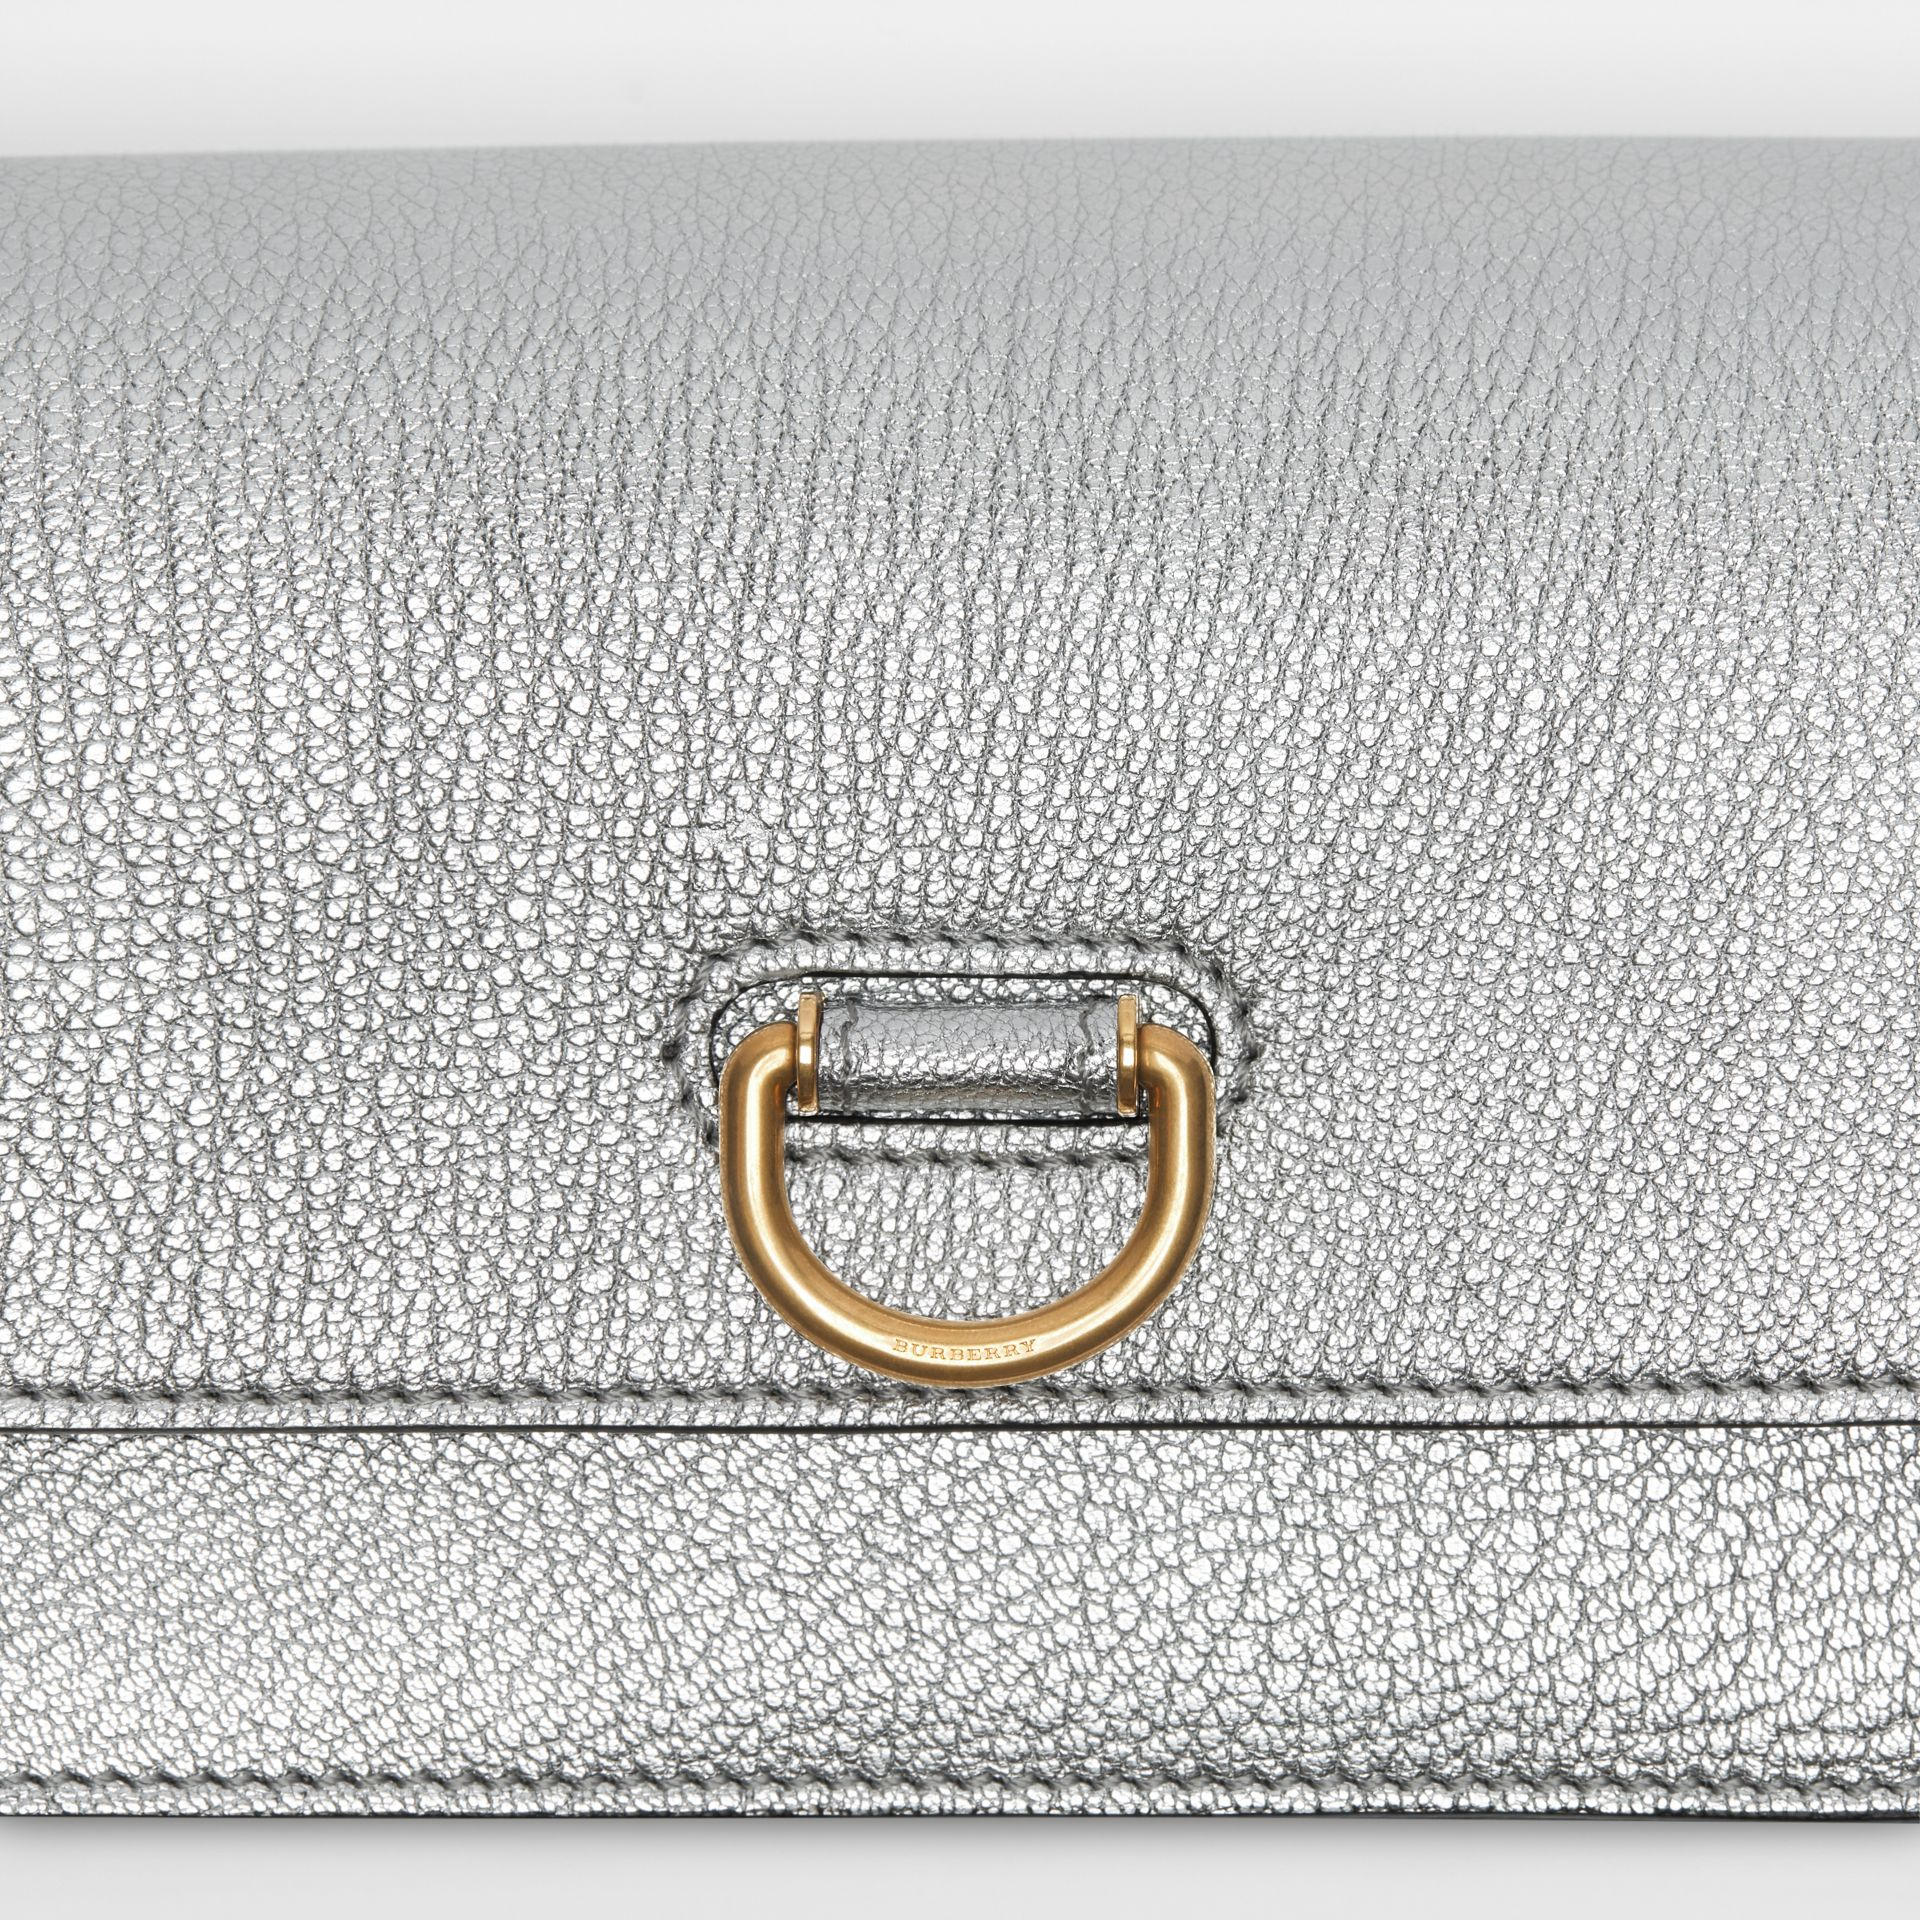 The Mini Leather D-ring Bag in Silver - Women | Burberry - gallery image 1